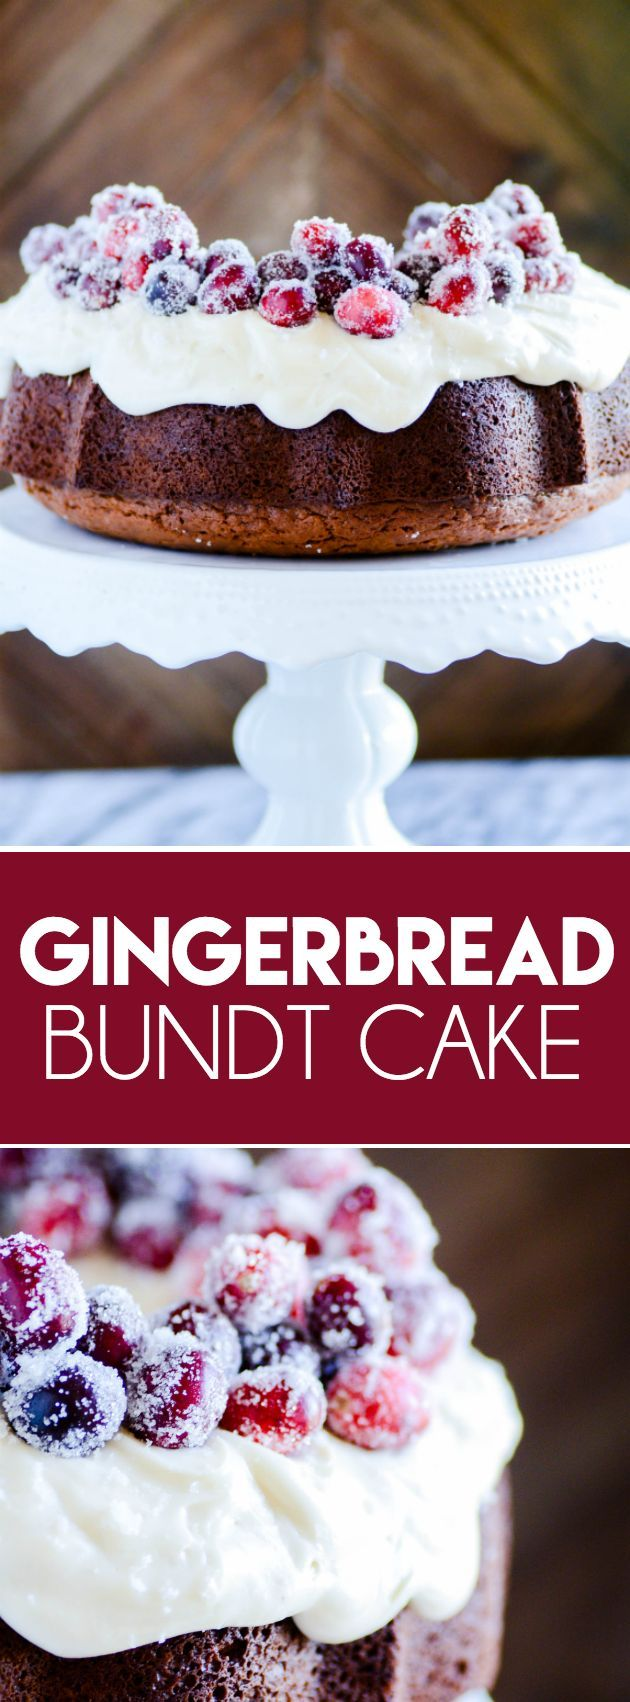 Gingerbread Bundt Cake with Cream Cheese Frosting www.somethingswan...